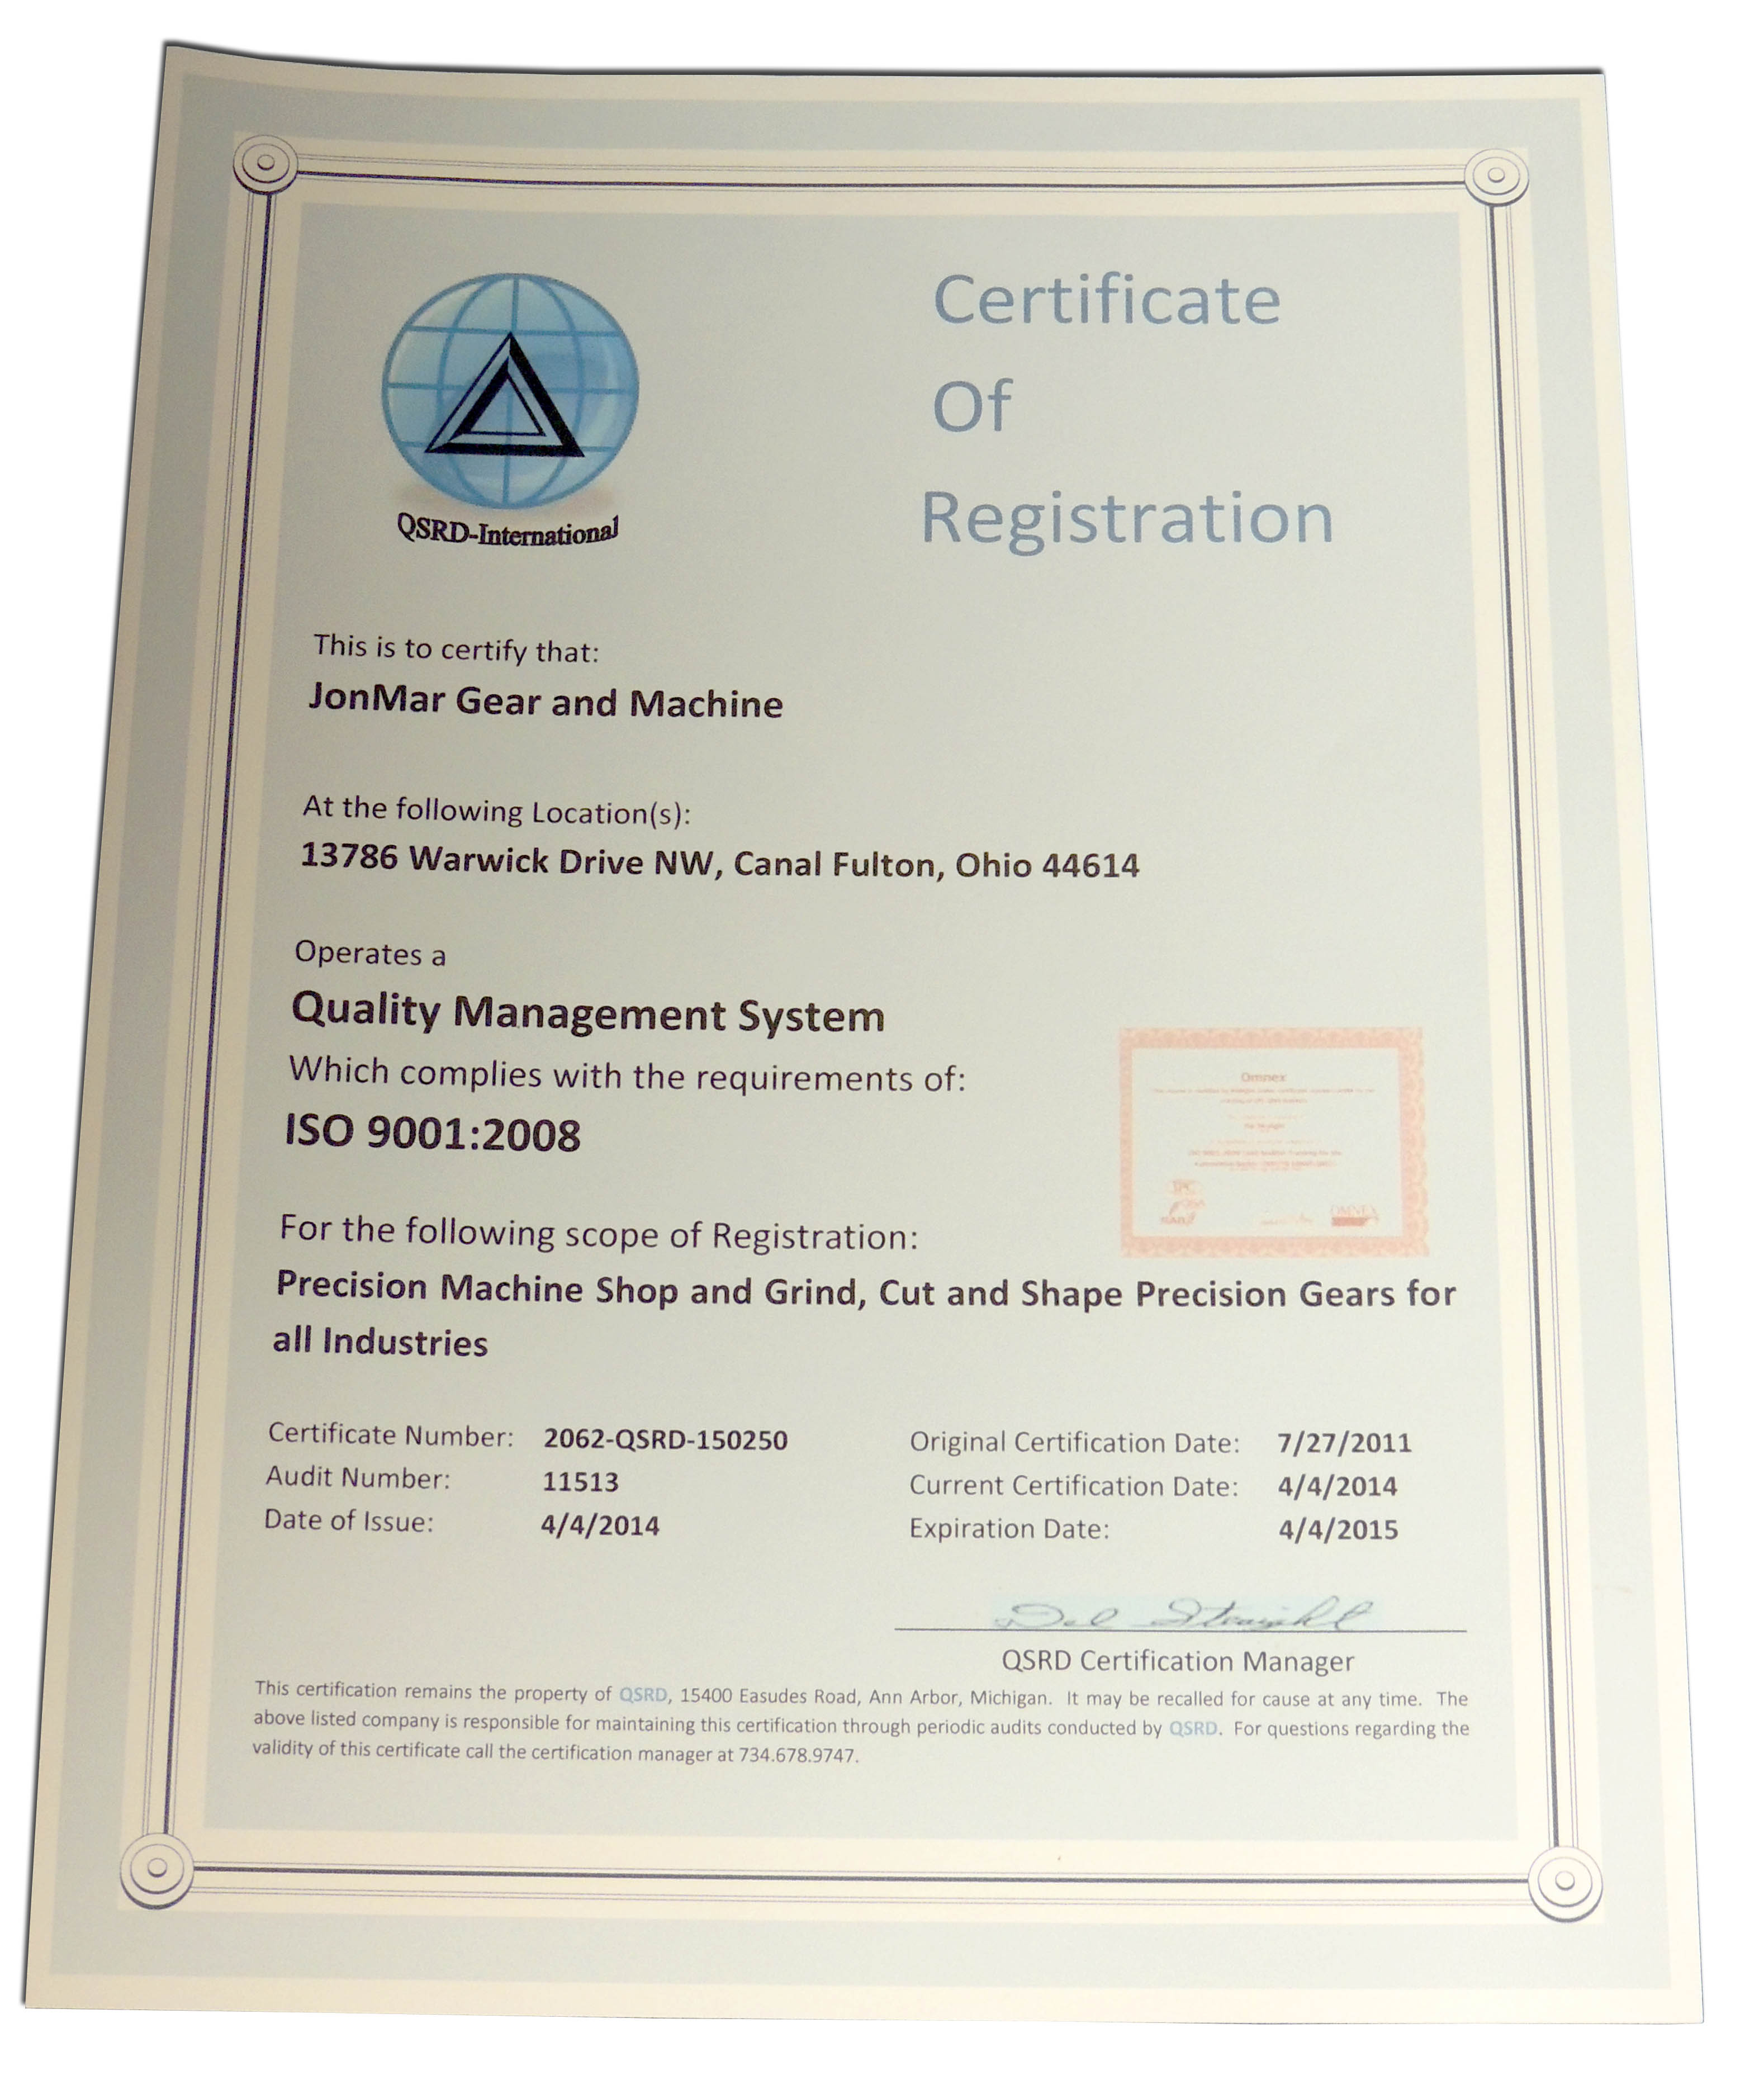 """""""ISO 9001 Certified"""" means an organization has met the requirements in ISO 9001. It defines an ISO 9000 Quality Management System (QMS). ISO 9001:2008 is focused on meeting customer expectations and delivering customer satisfaction so you must pay attention to the customer."""